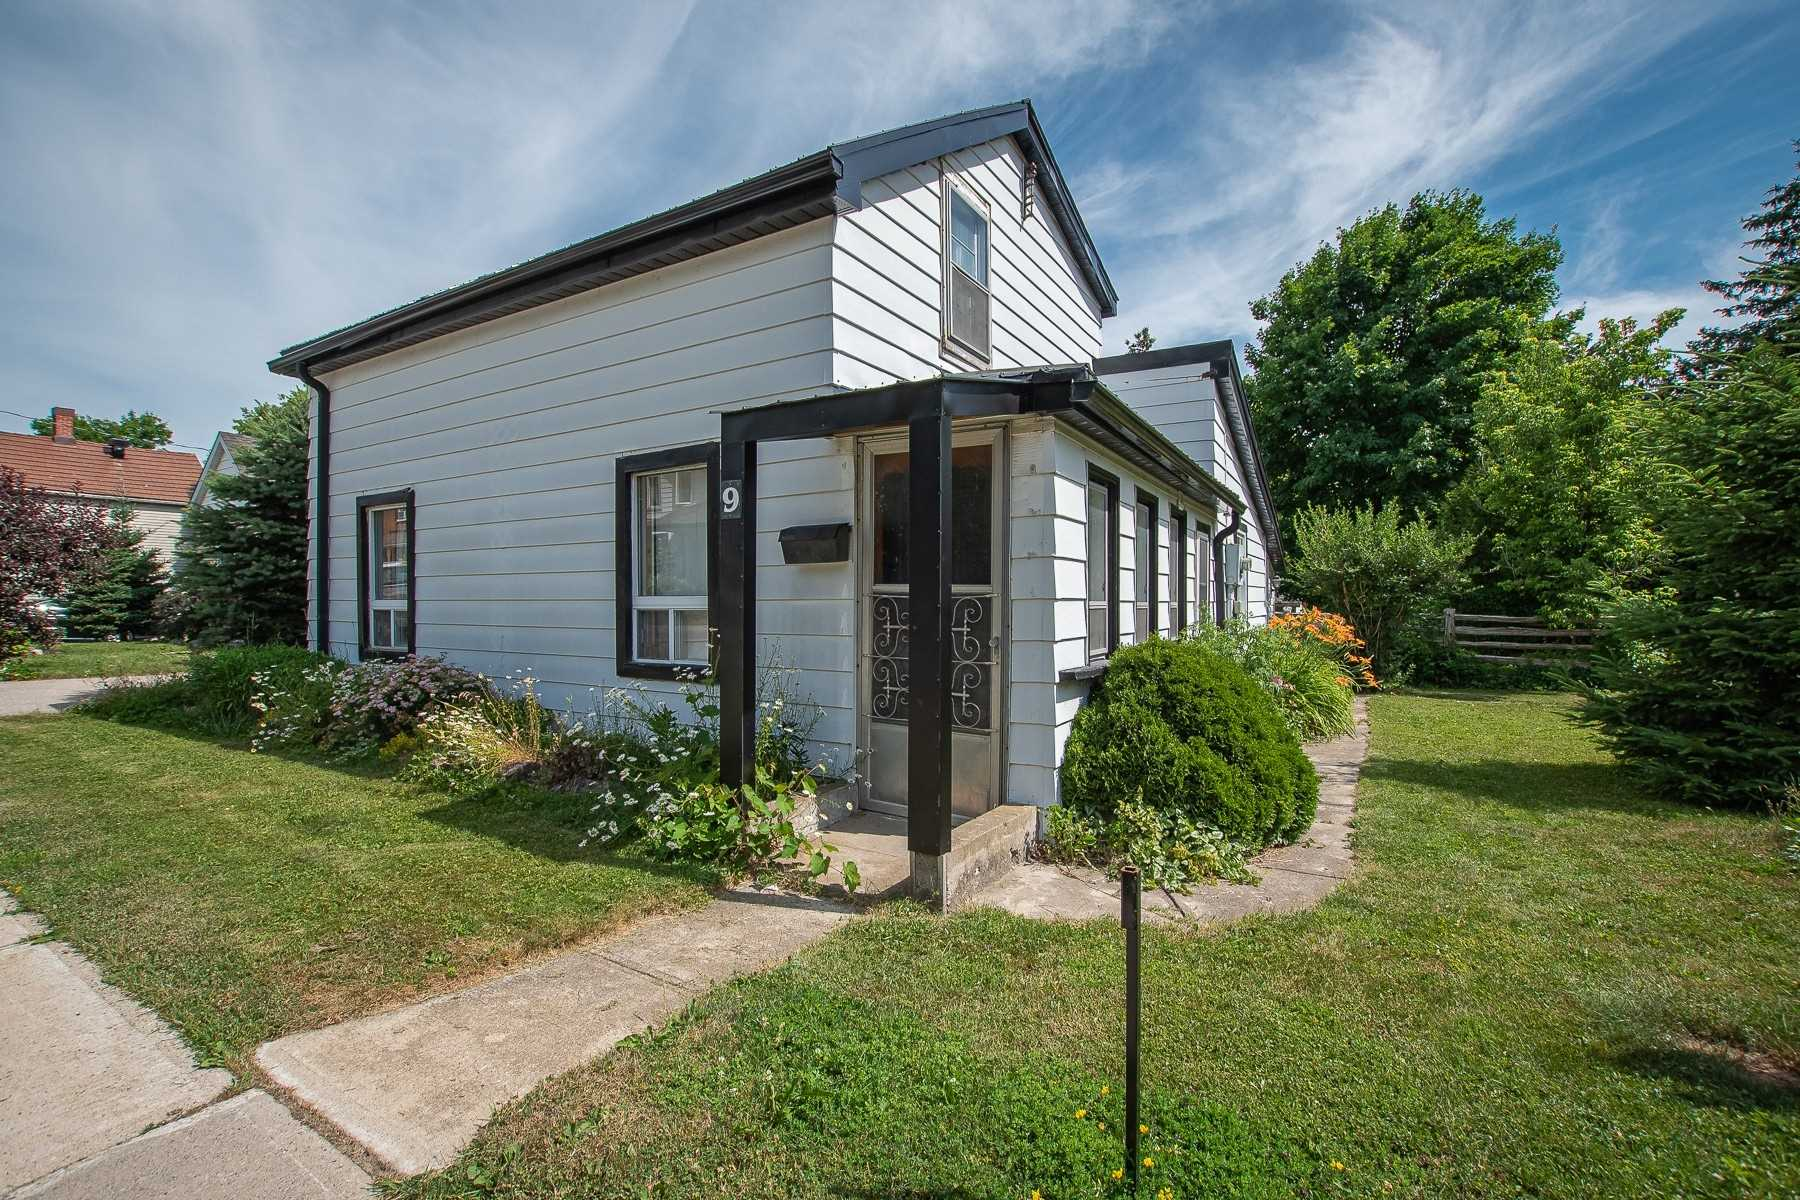 FEATURED LISTING: 9 Margaret Street Orangeville